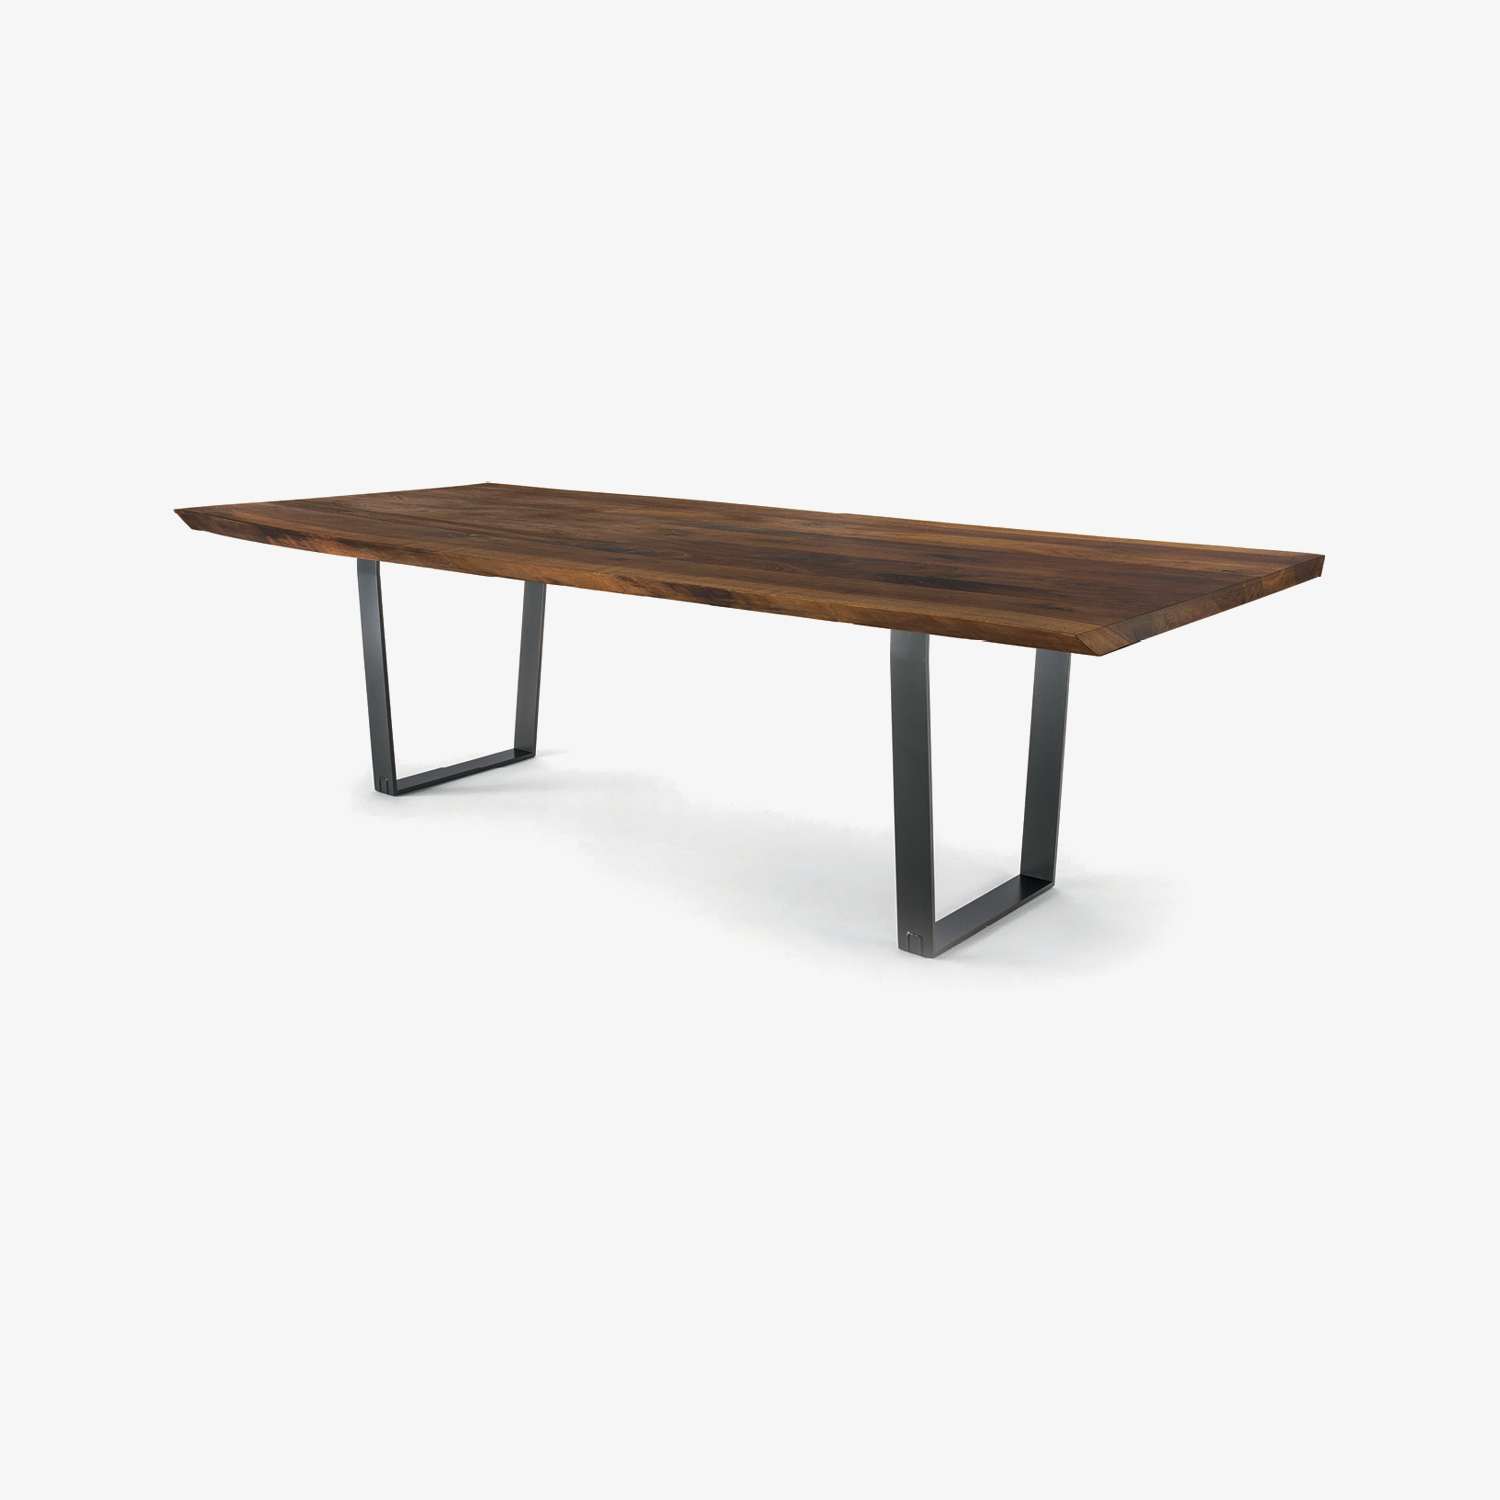 TAVOLI_D-T-_TABLE_NATURAL_SIDES